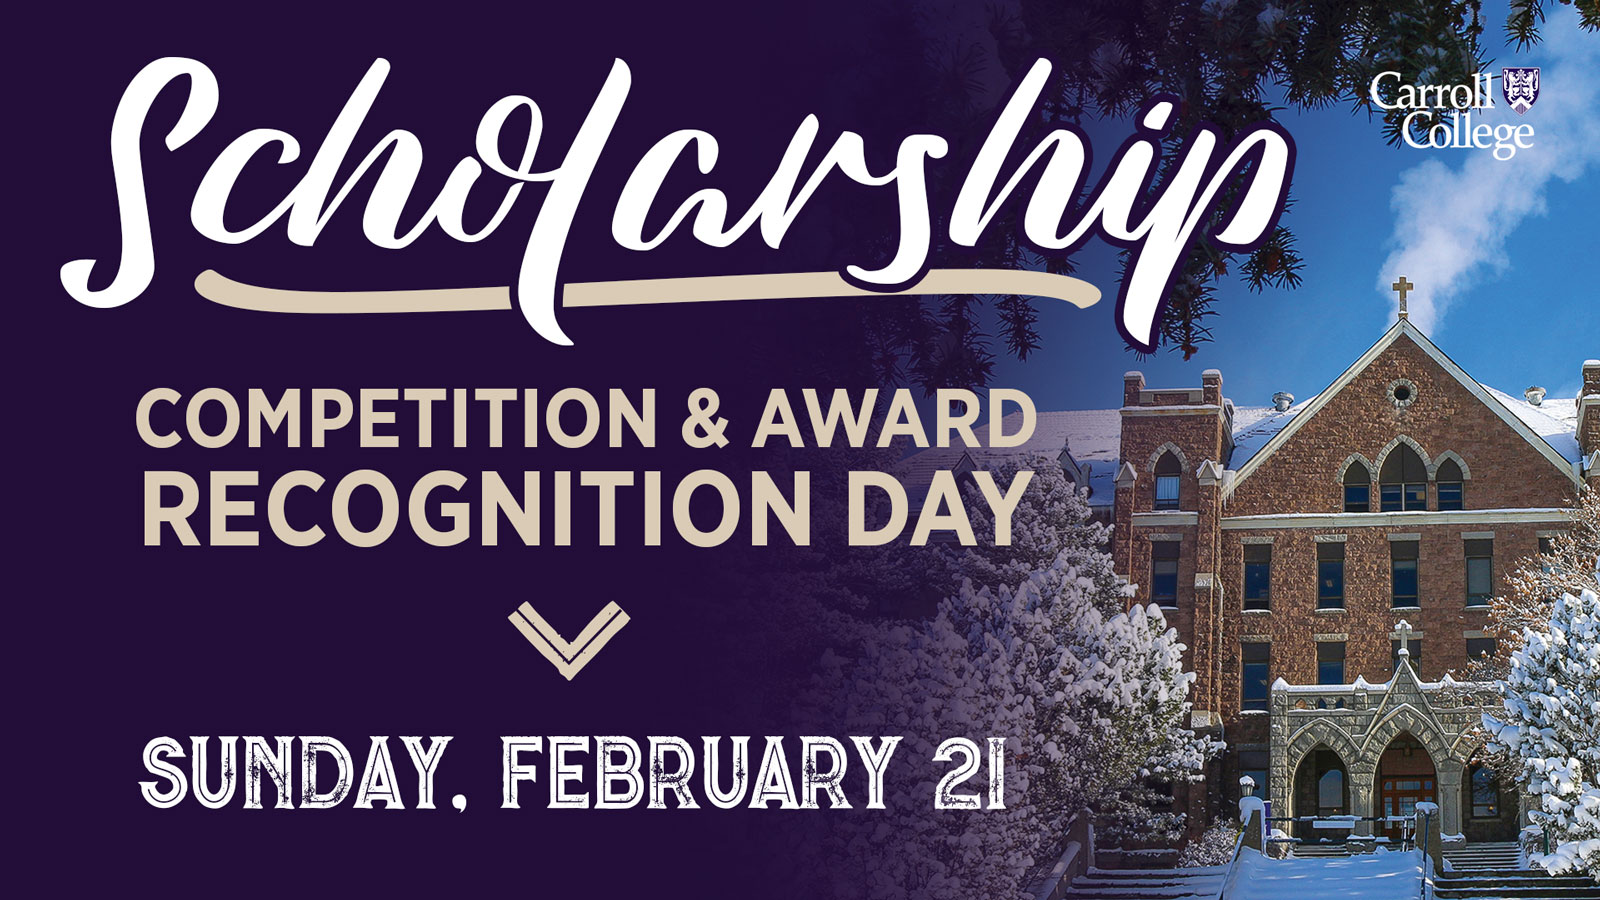 Scholarship Competition & Award Recognition Day graphic